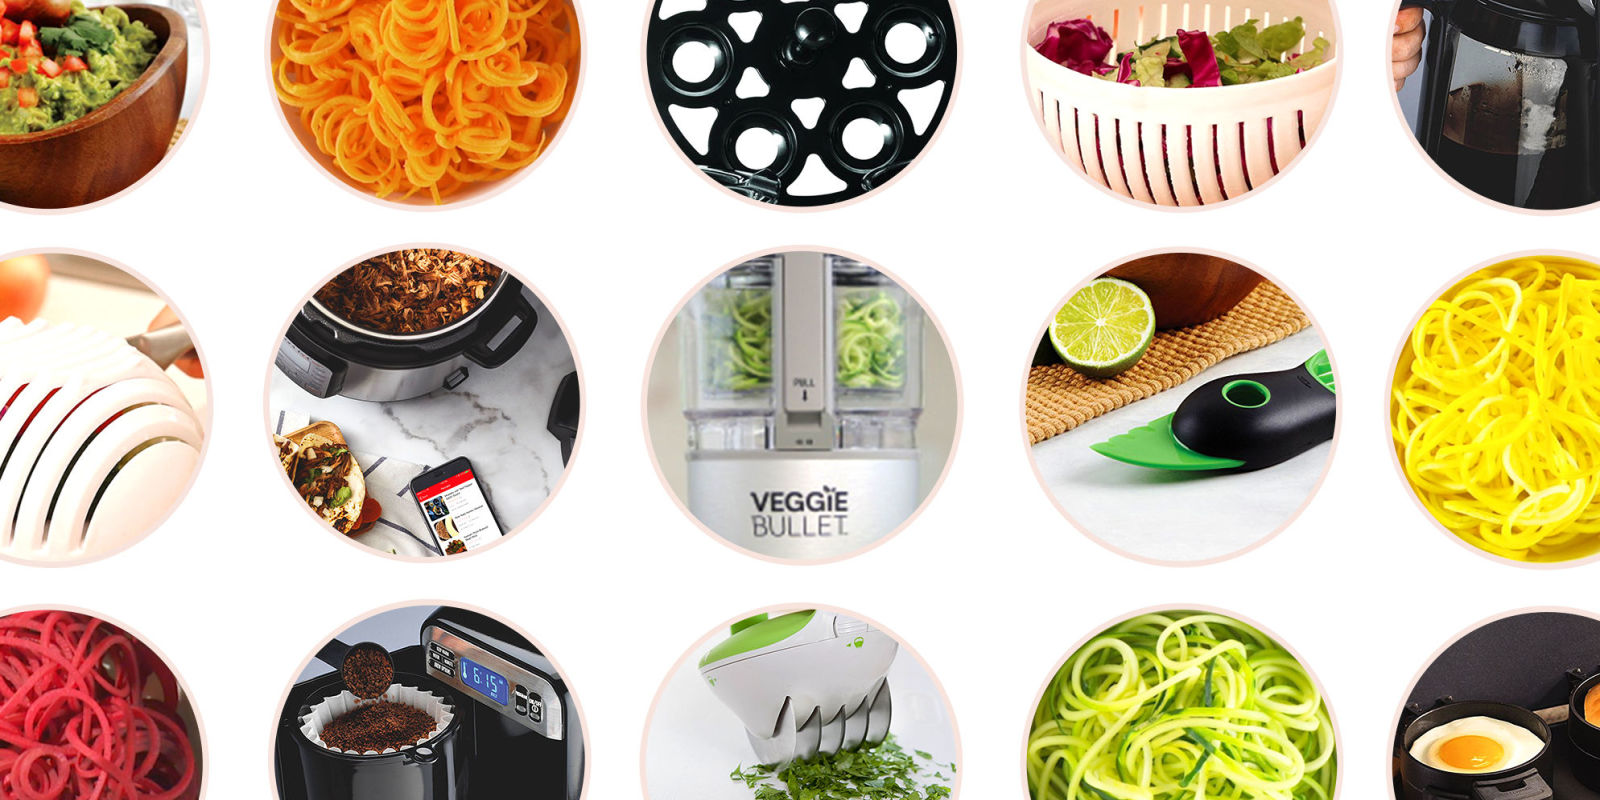 11 Coolest Kitchen Gadgets In 2017 Quirky Kitchen Tools